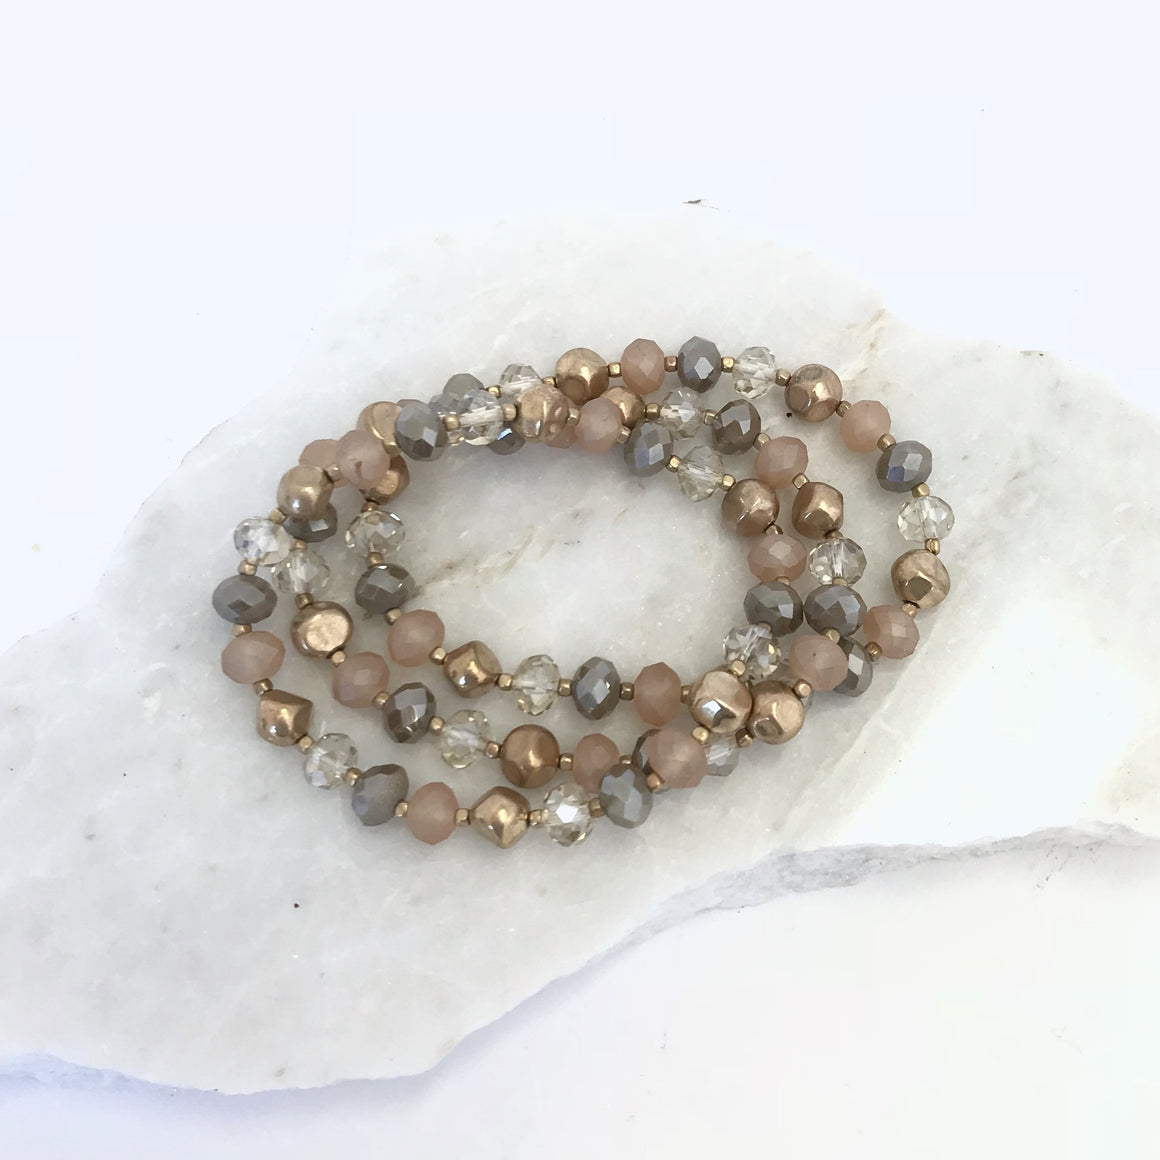 Ready To Rock Crystal Bracelet Set - Dainty Hooligan